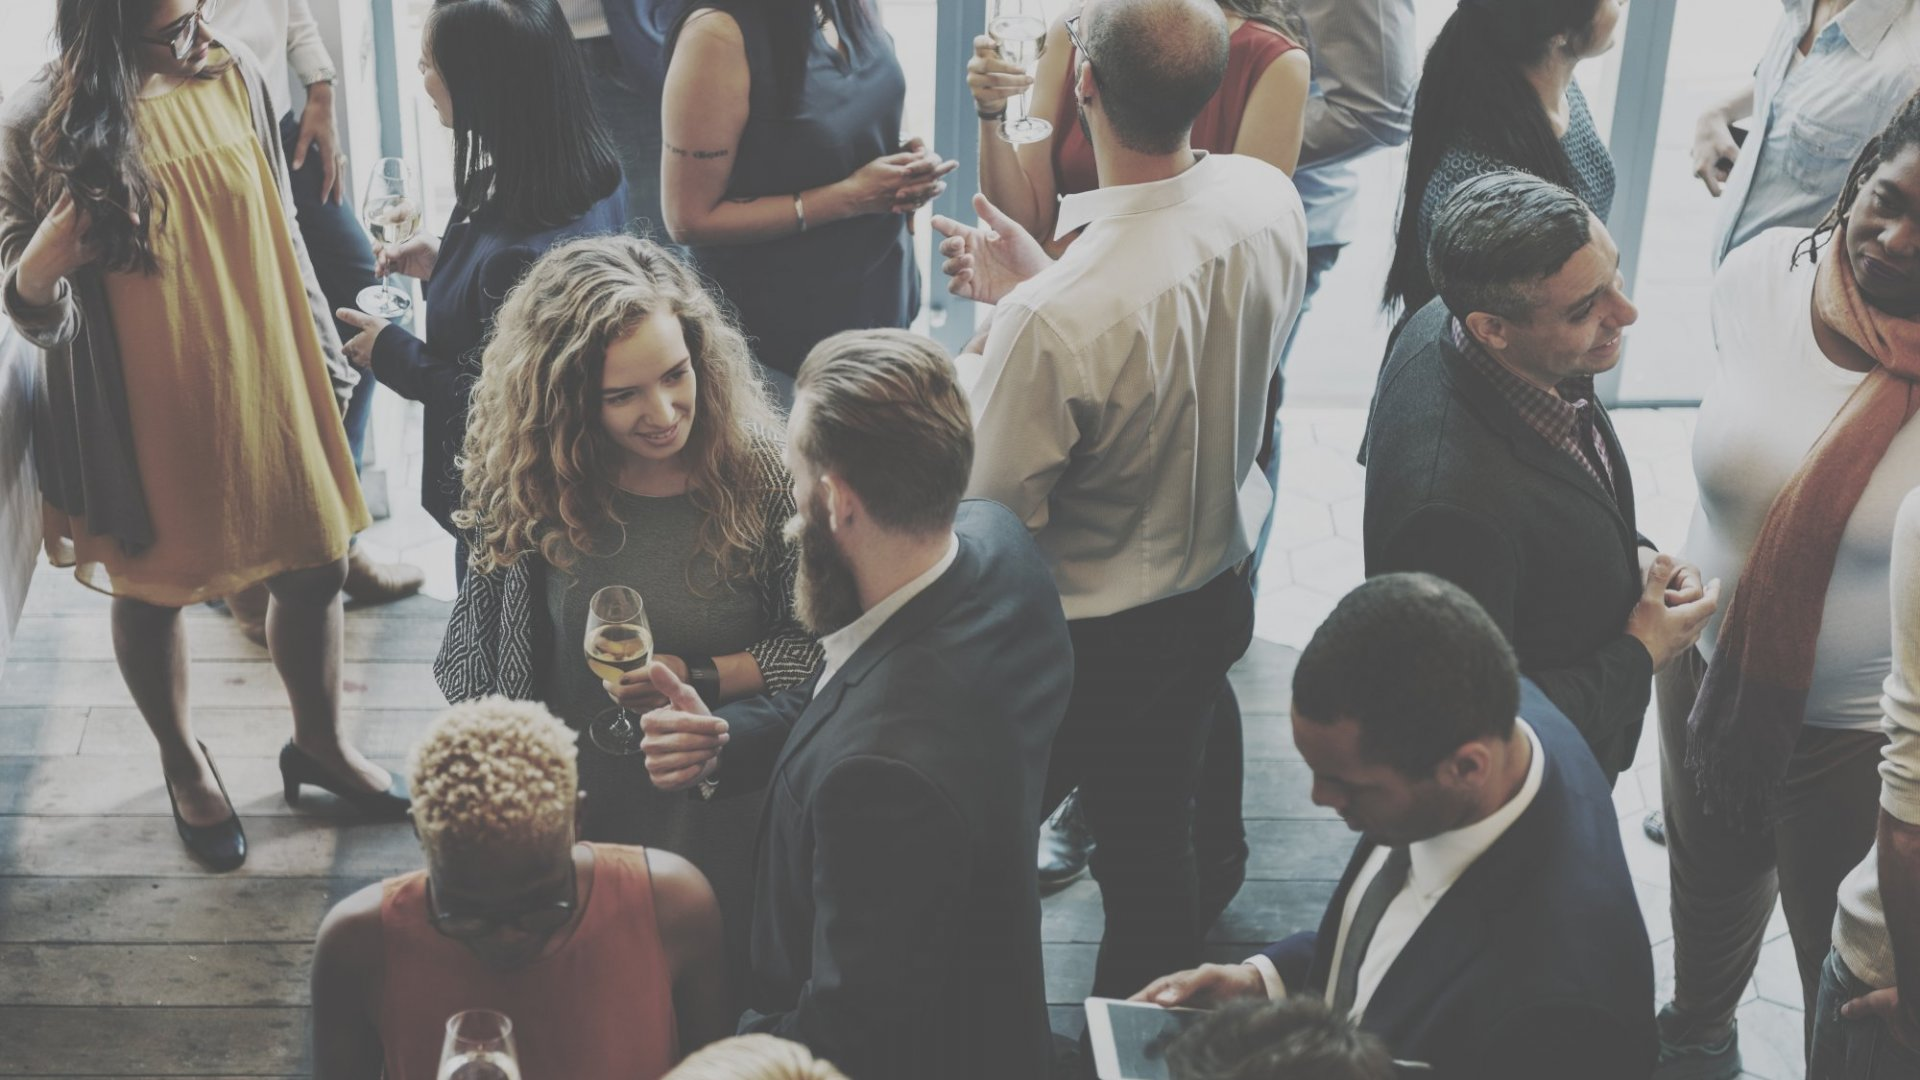 Try Any of These 5 Strategies to Absolutely Crush Your Next Networking Event